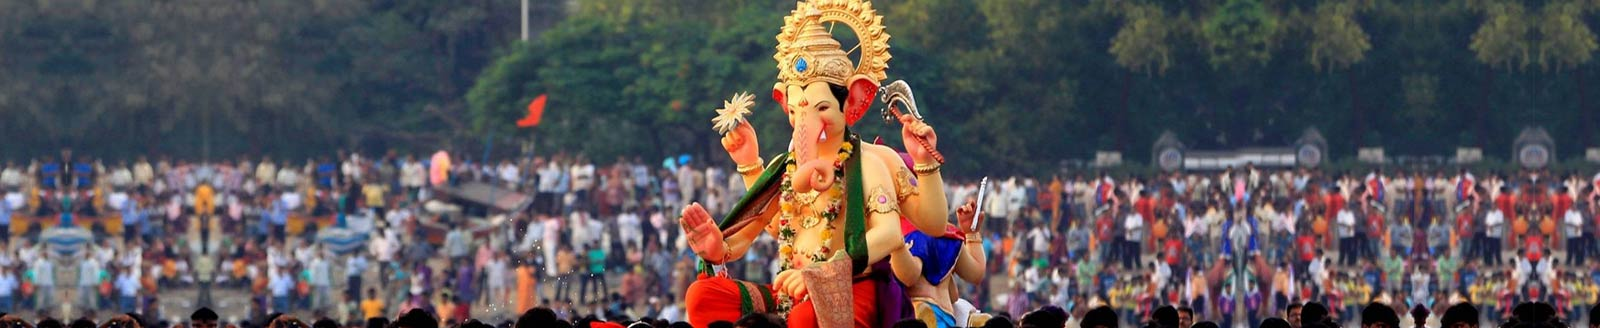 ganesh chaturthi essays short speech and essay on ganesh chaturthi ganesh chaturthi essays